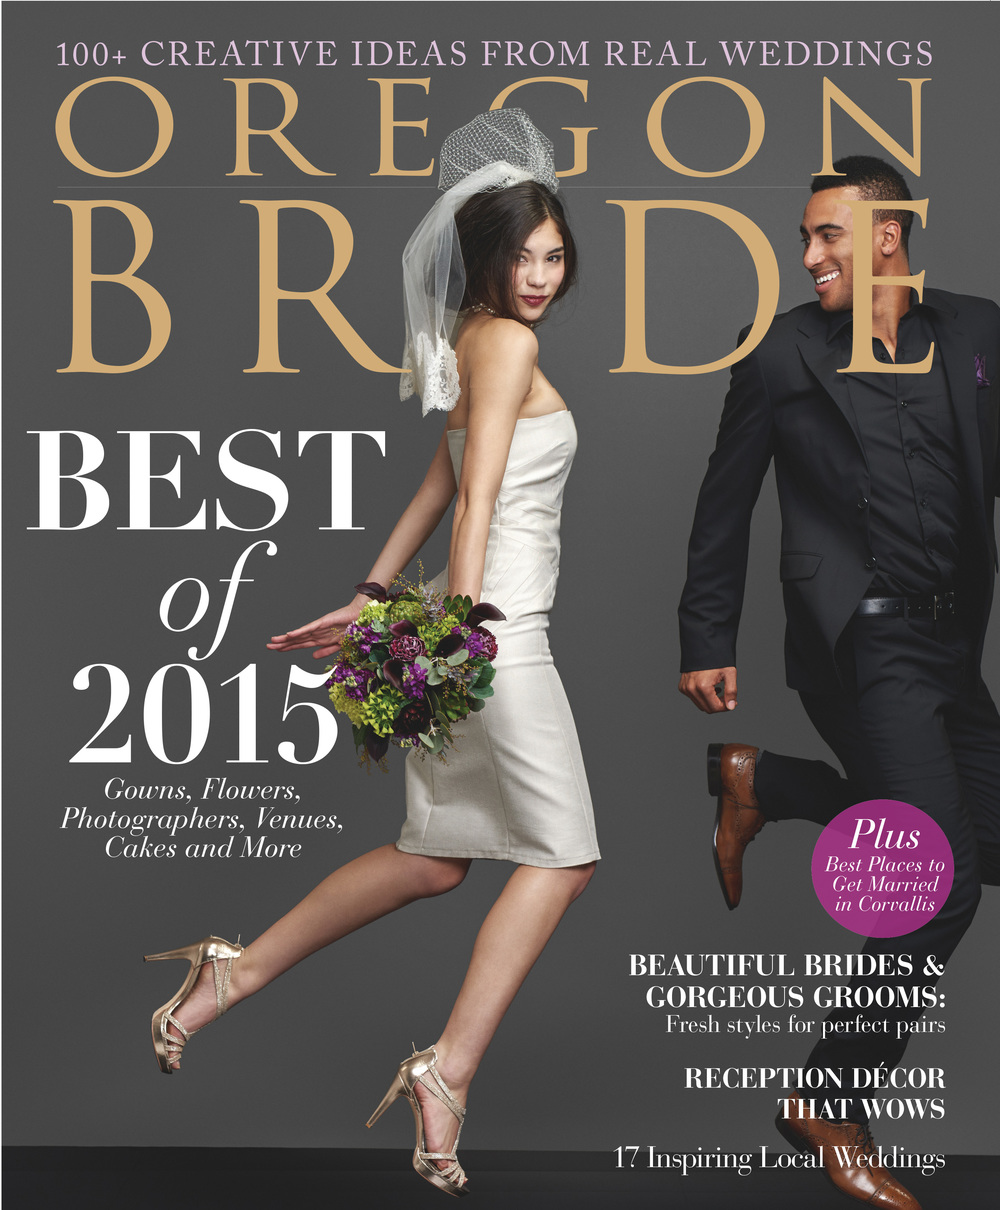 OR Bride Fall Winter 2015 Cover.jpg